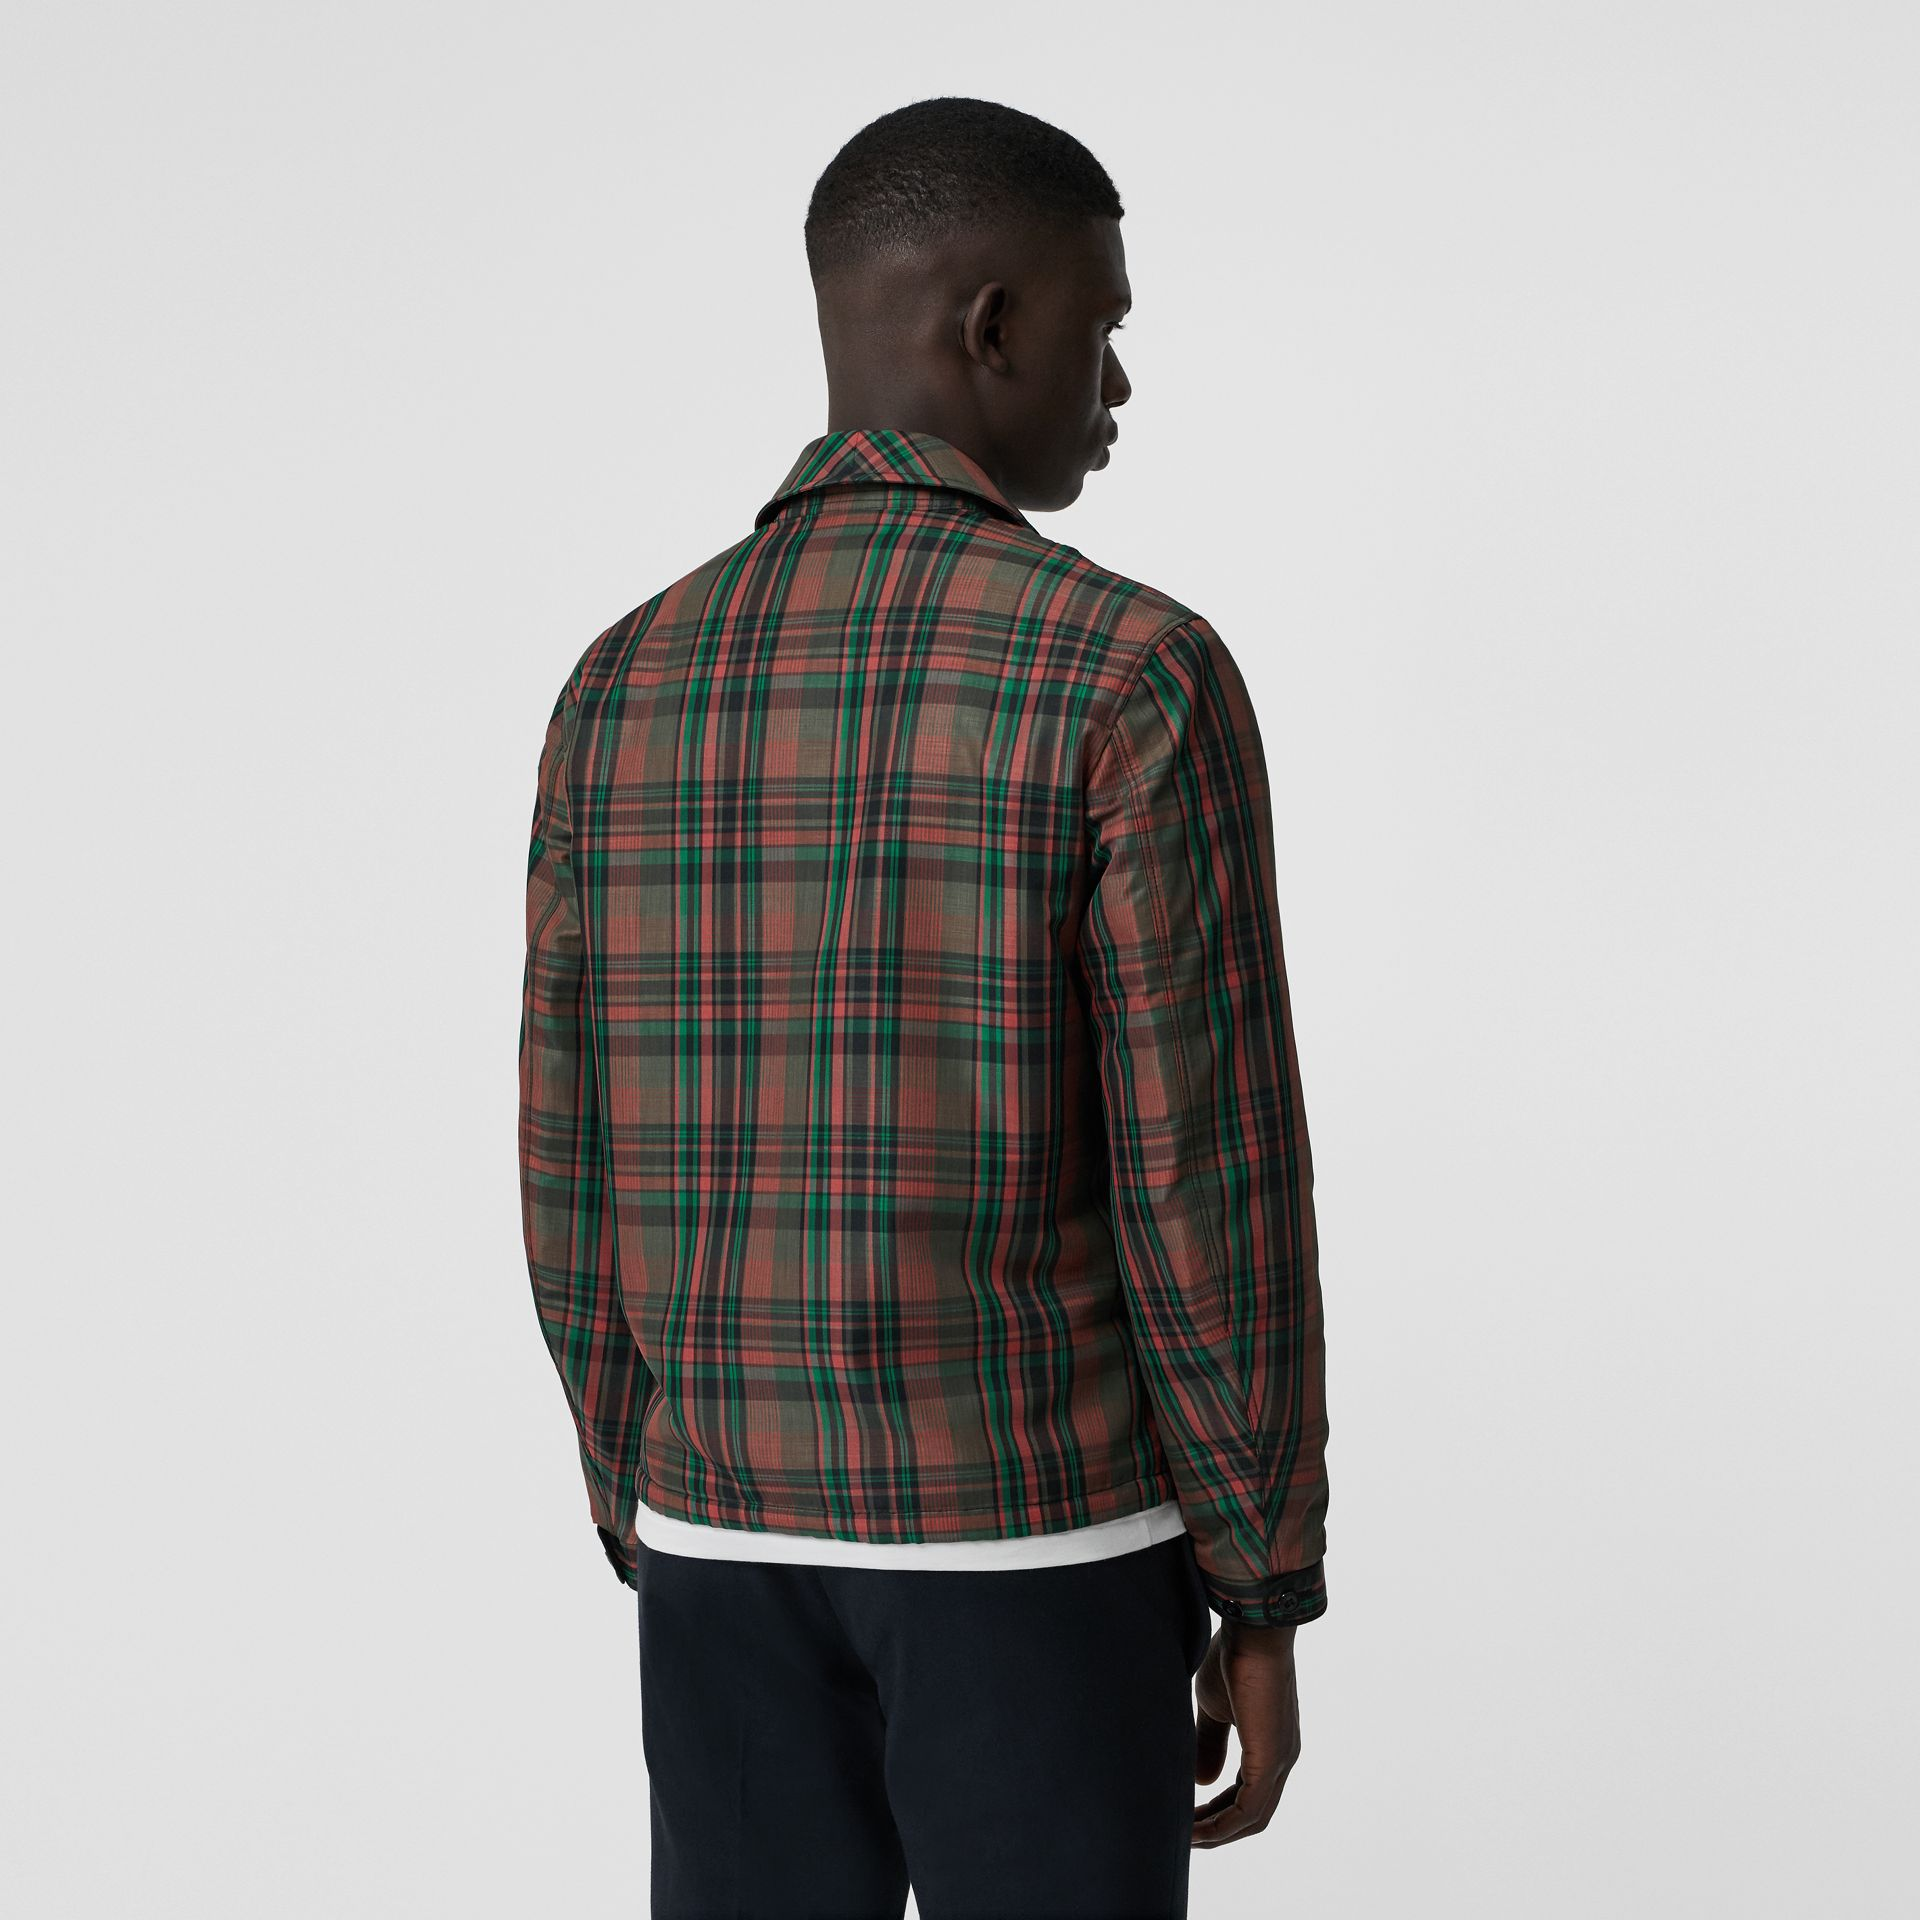 Veste Harrington à motif check avec doublure molletonnée (Rouge Feuille Morte) - Homme | Burberry - photo de la galerie 2